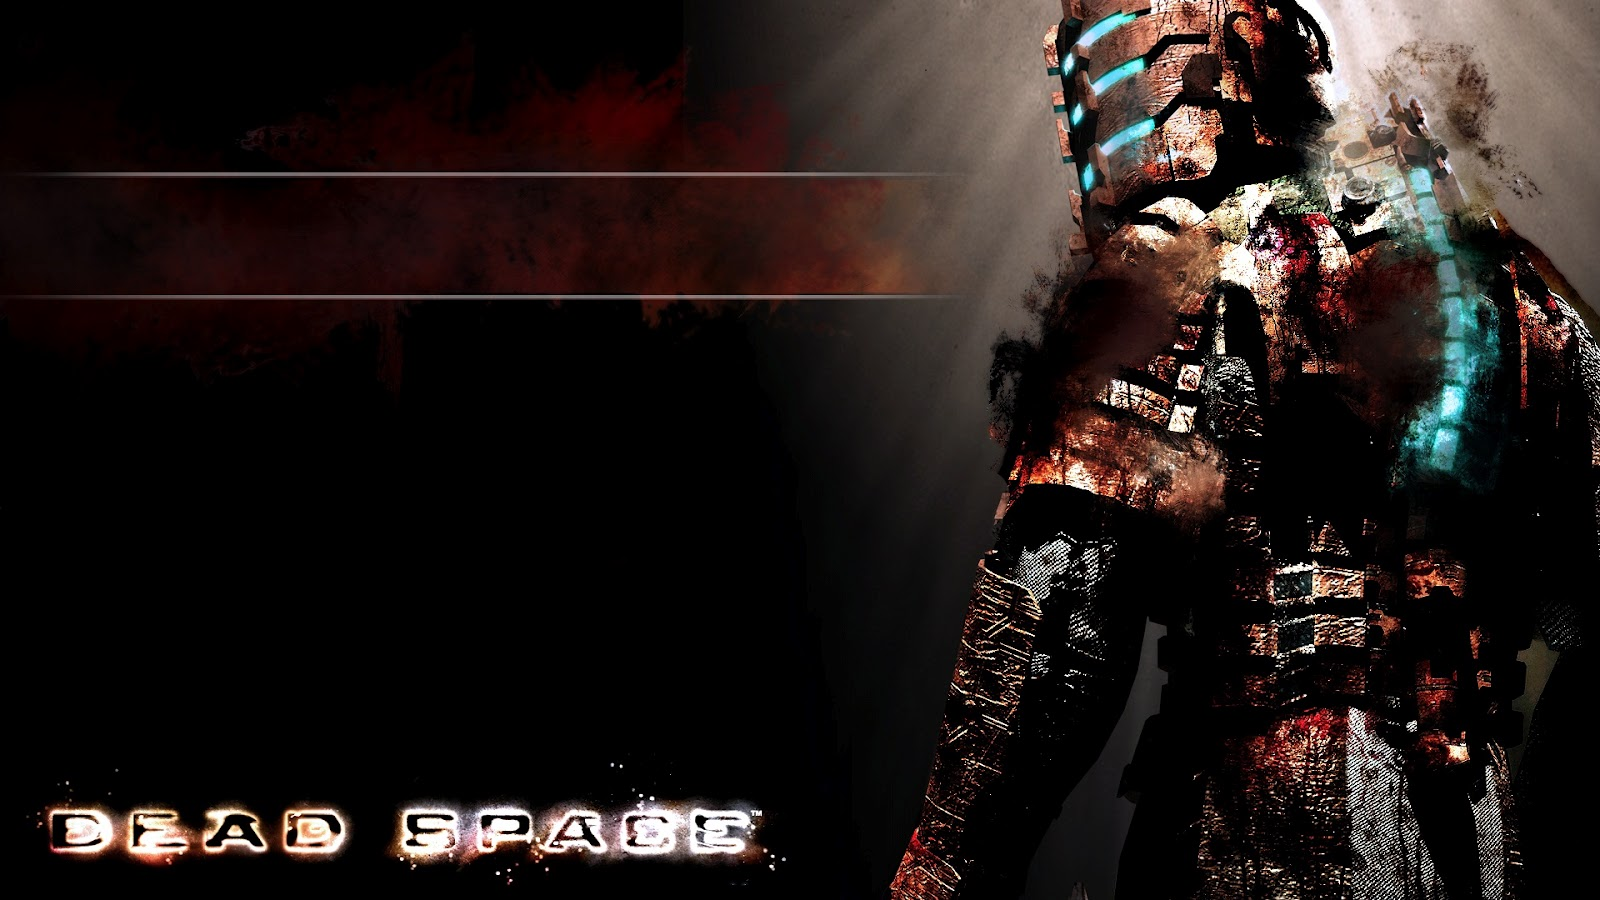 dead space wallpaper 1 Dead Space 1 Wallpapers in HD 1080p